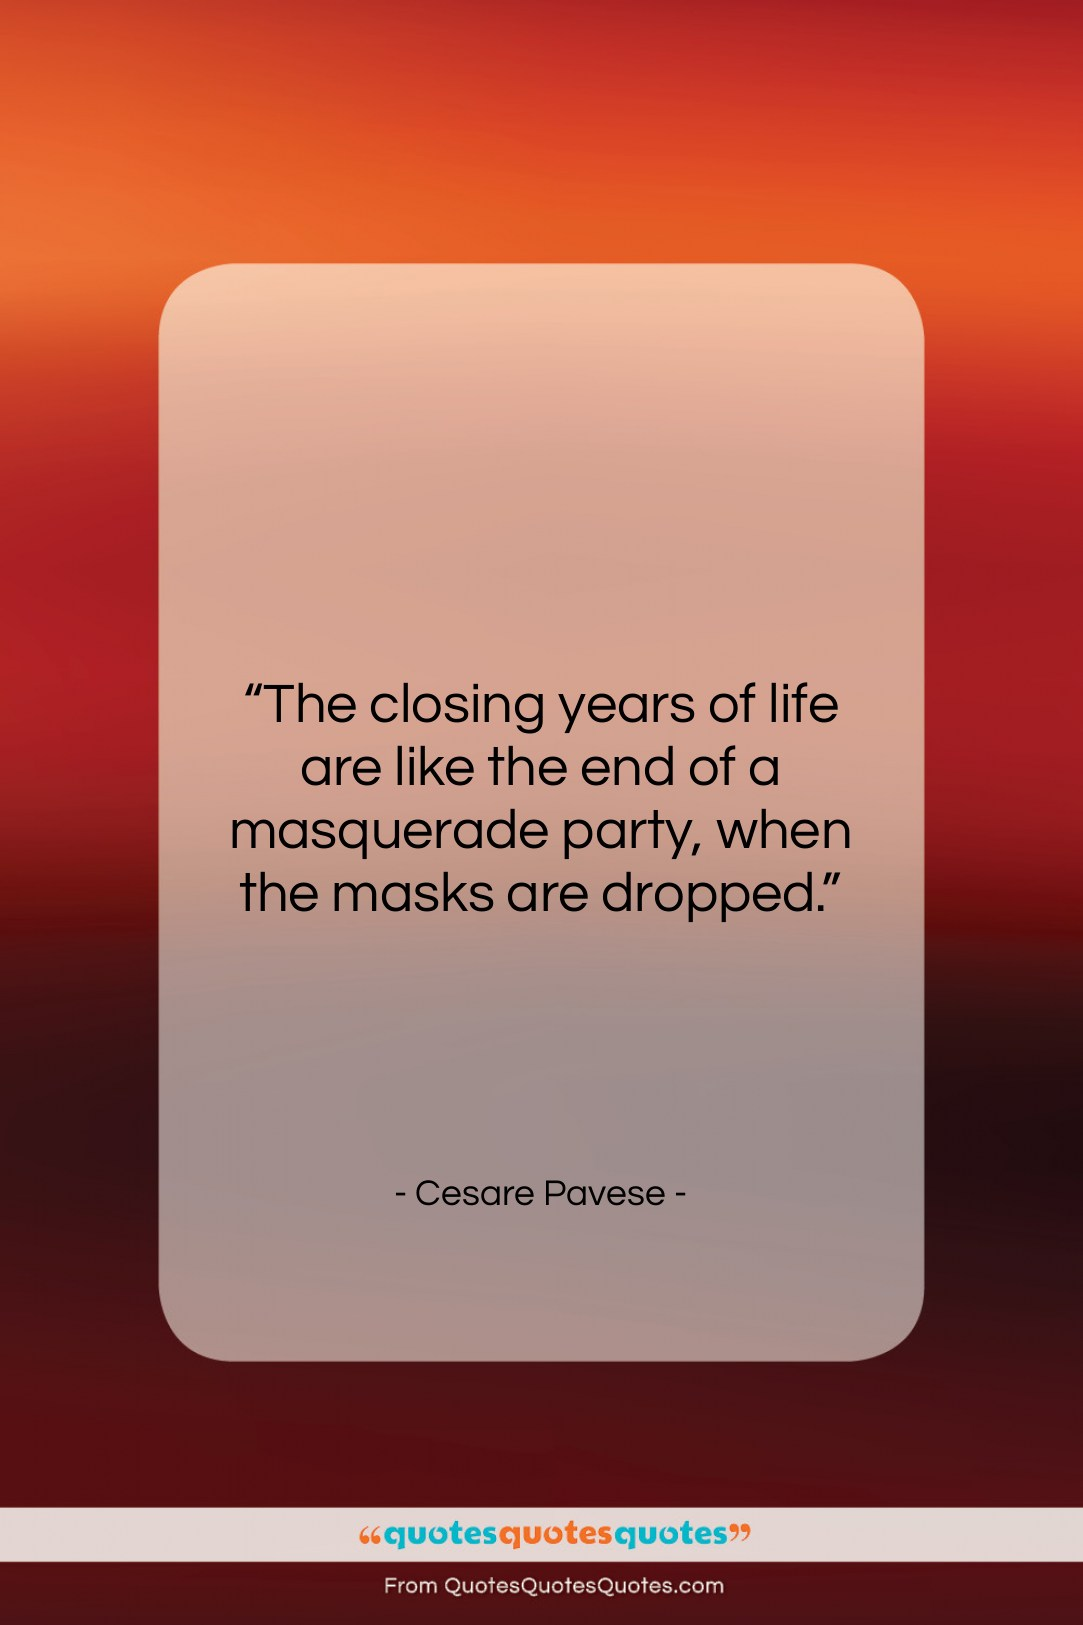 """Cesare Pavese quote: """"The closing years of life are like…""""- at QuotesQuotesQuotes.com"""